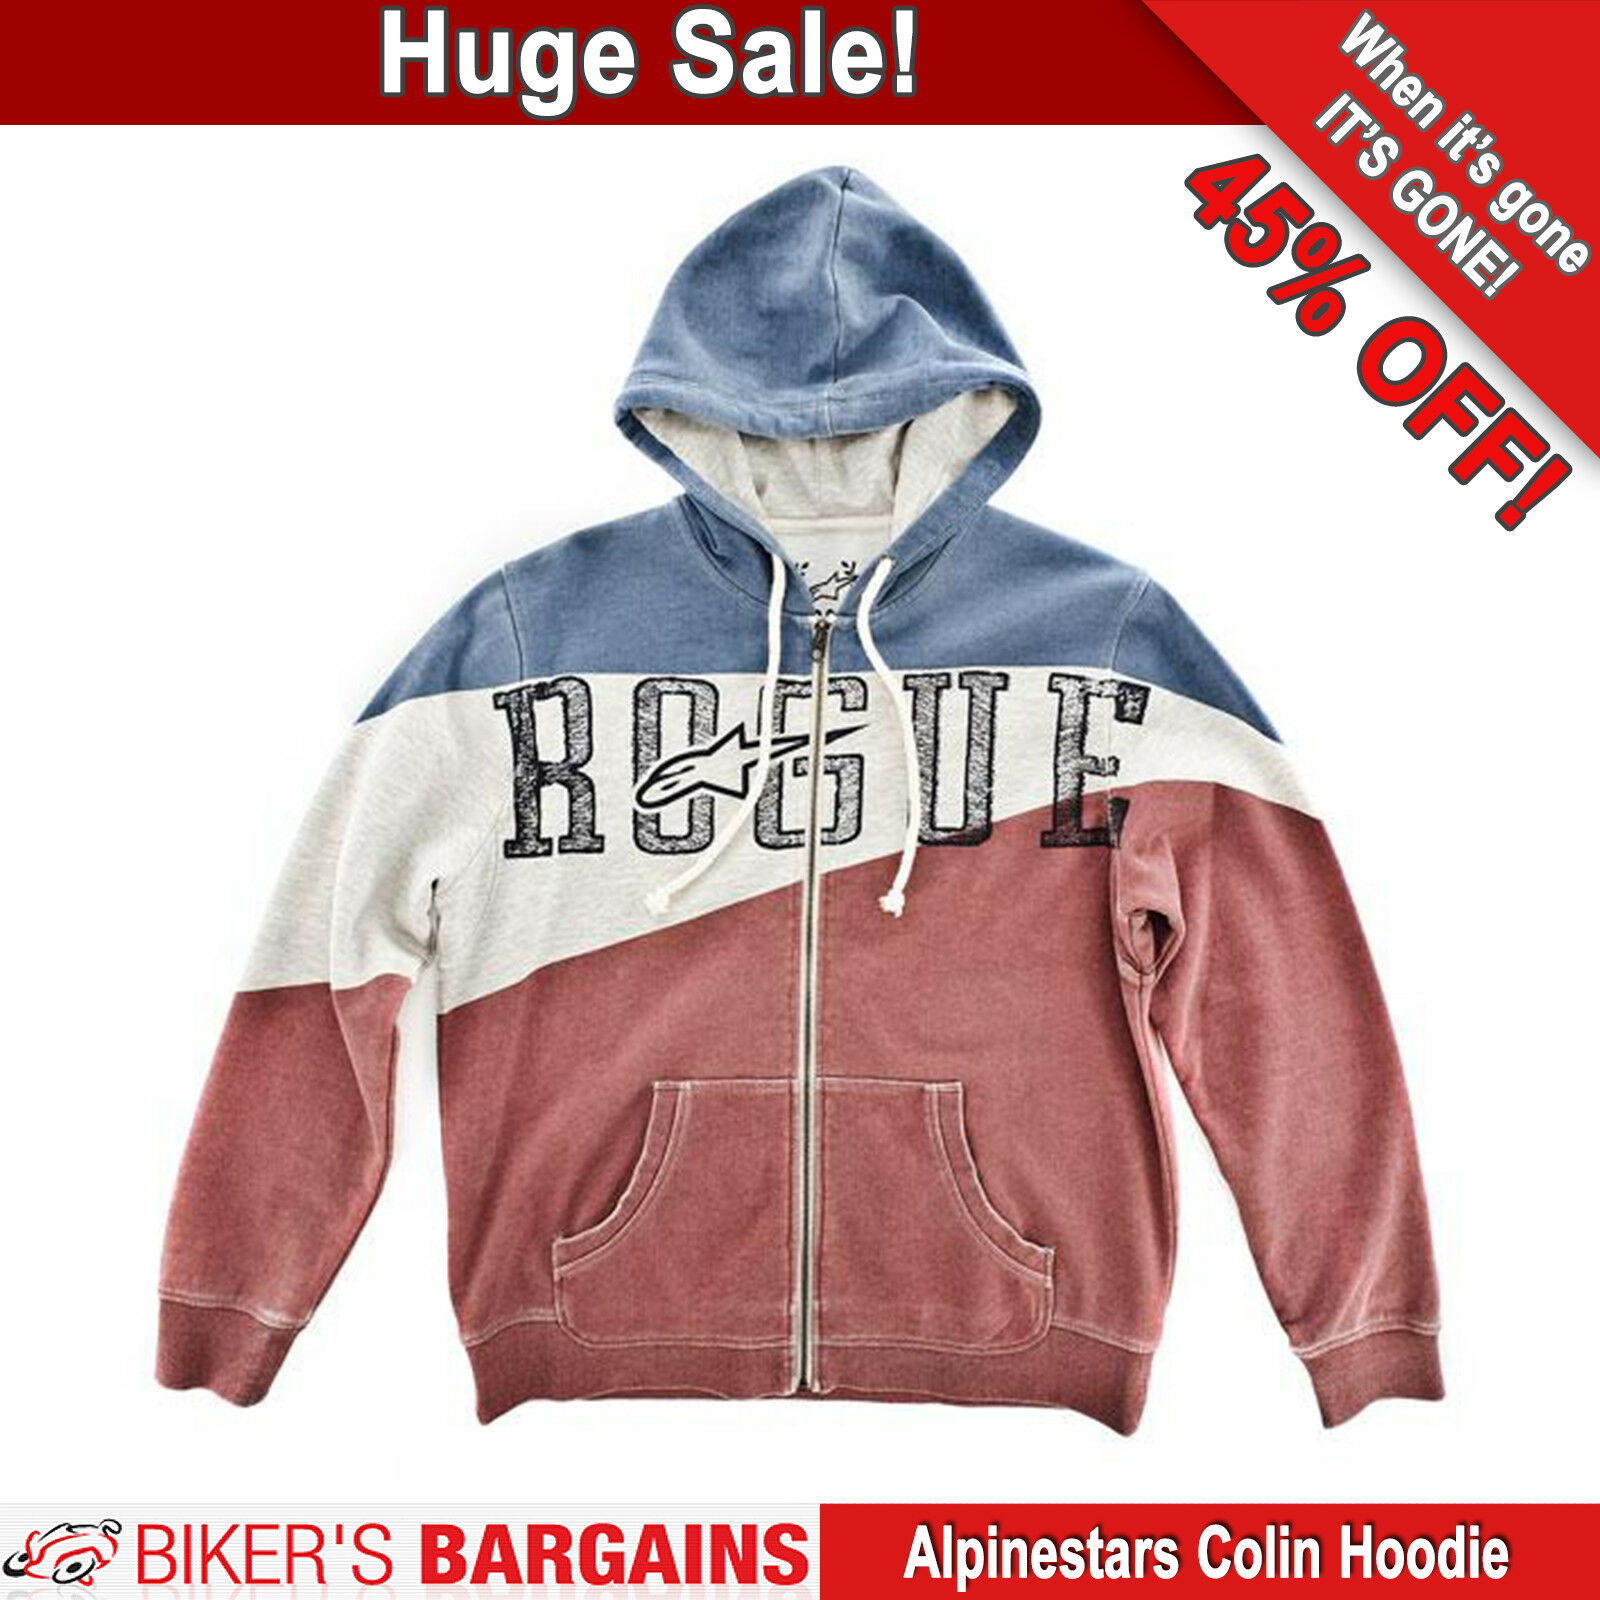 ALPINESTARS COLIN HOODIE (UK42 EU52) WAS  - - - NOW  45% OFF 9146d2